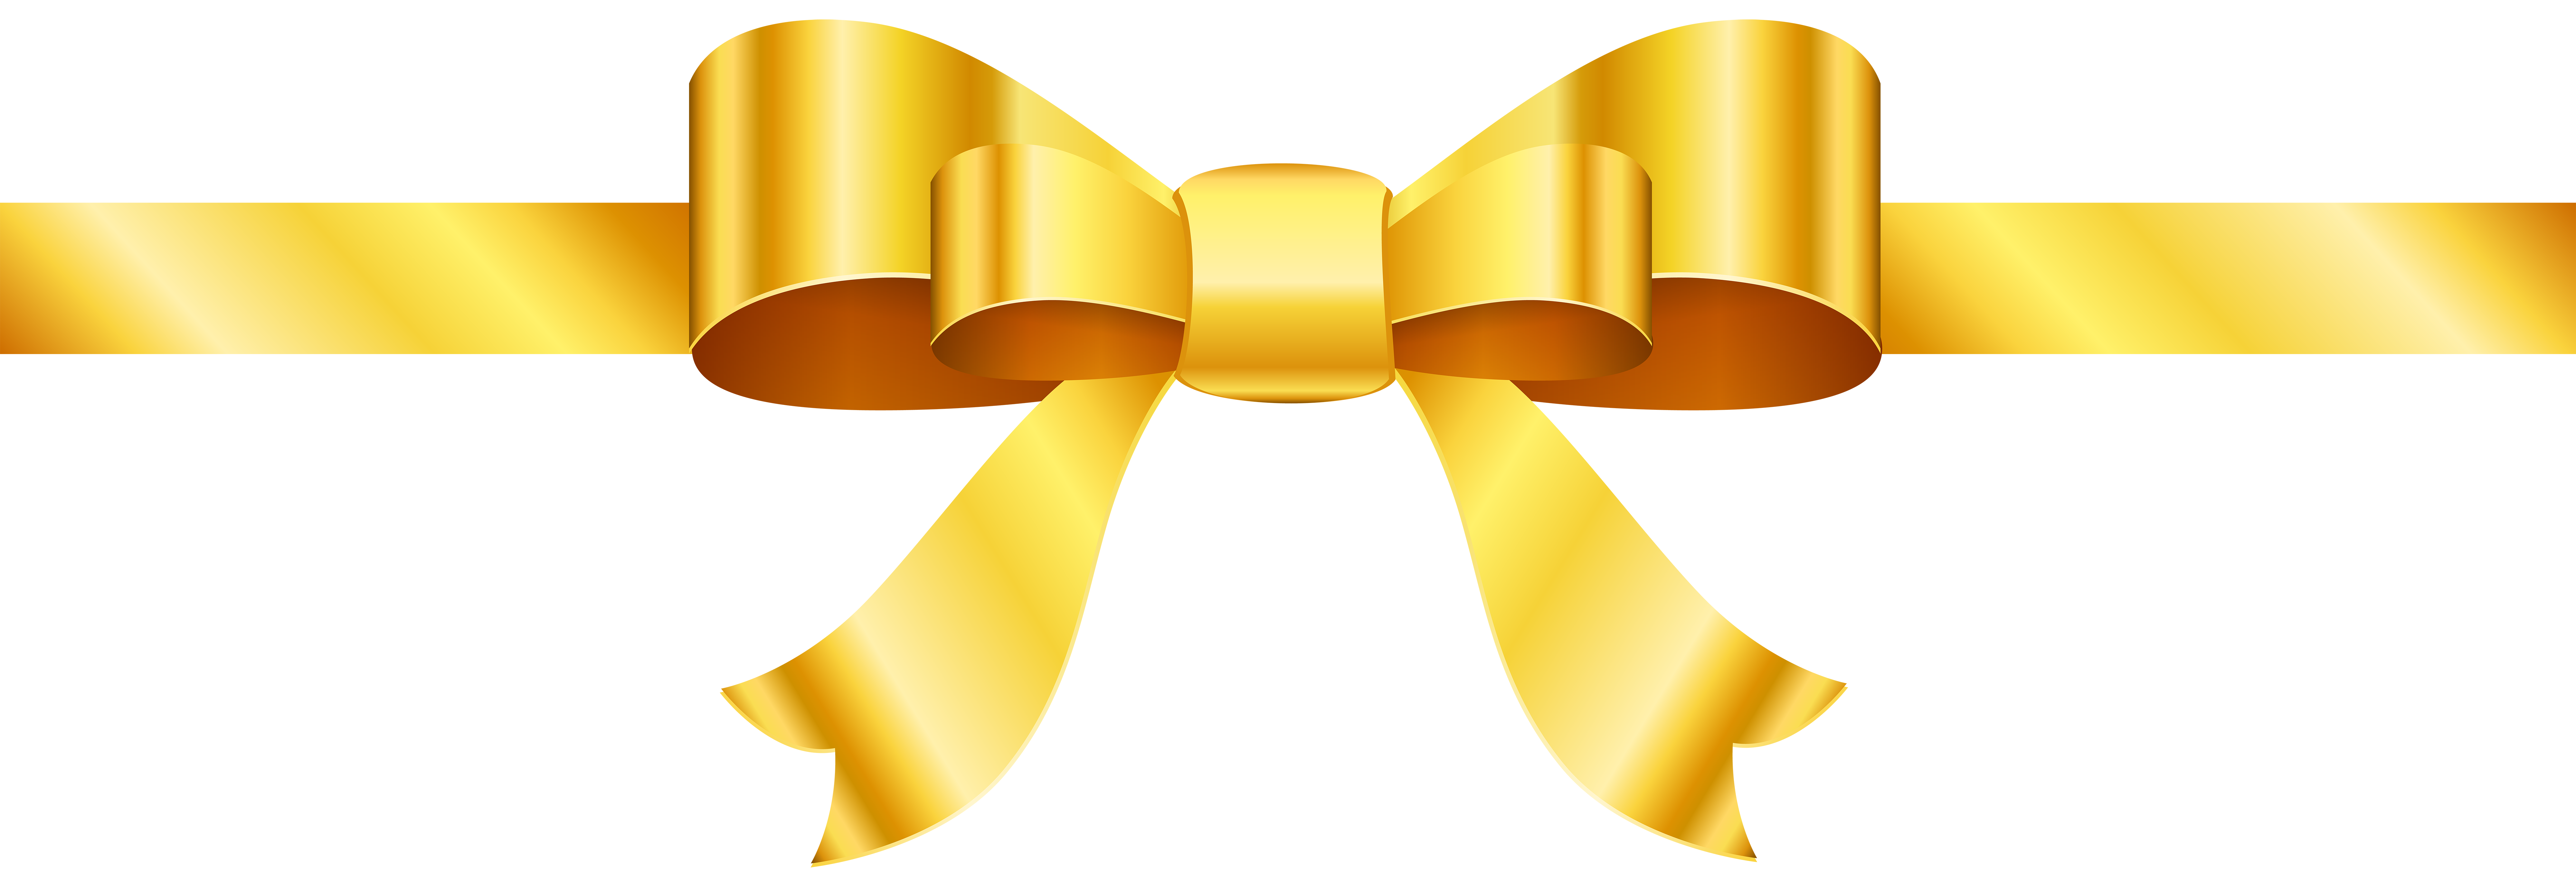 Gold bow png. Clip art image gallery